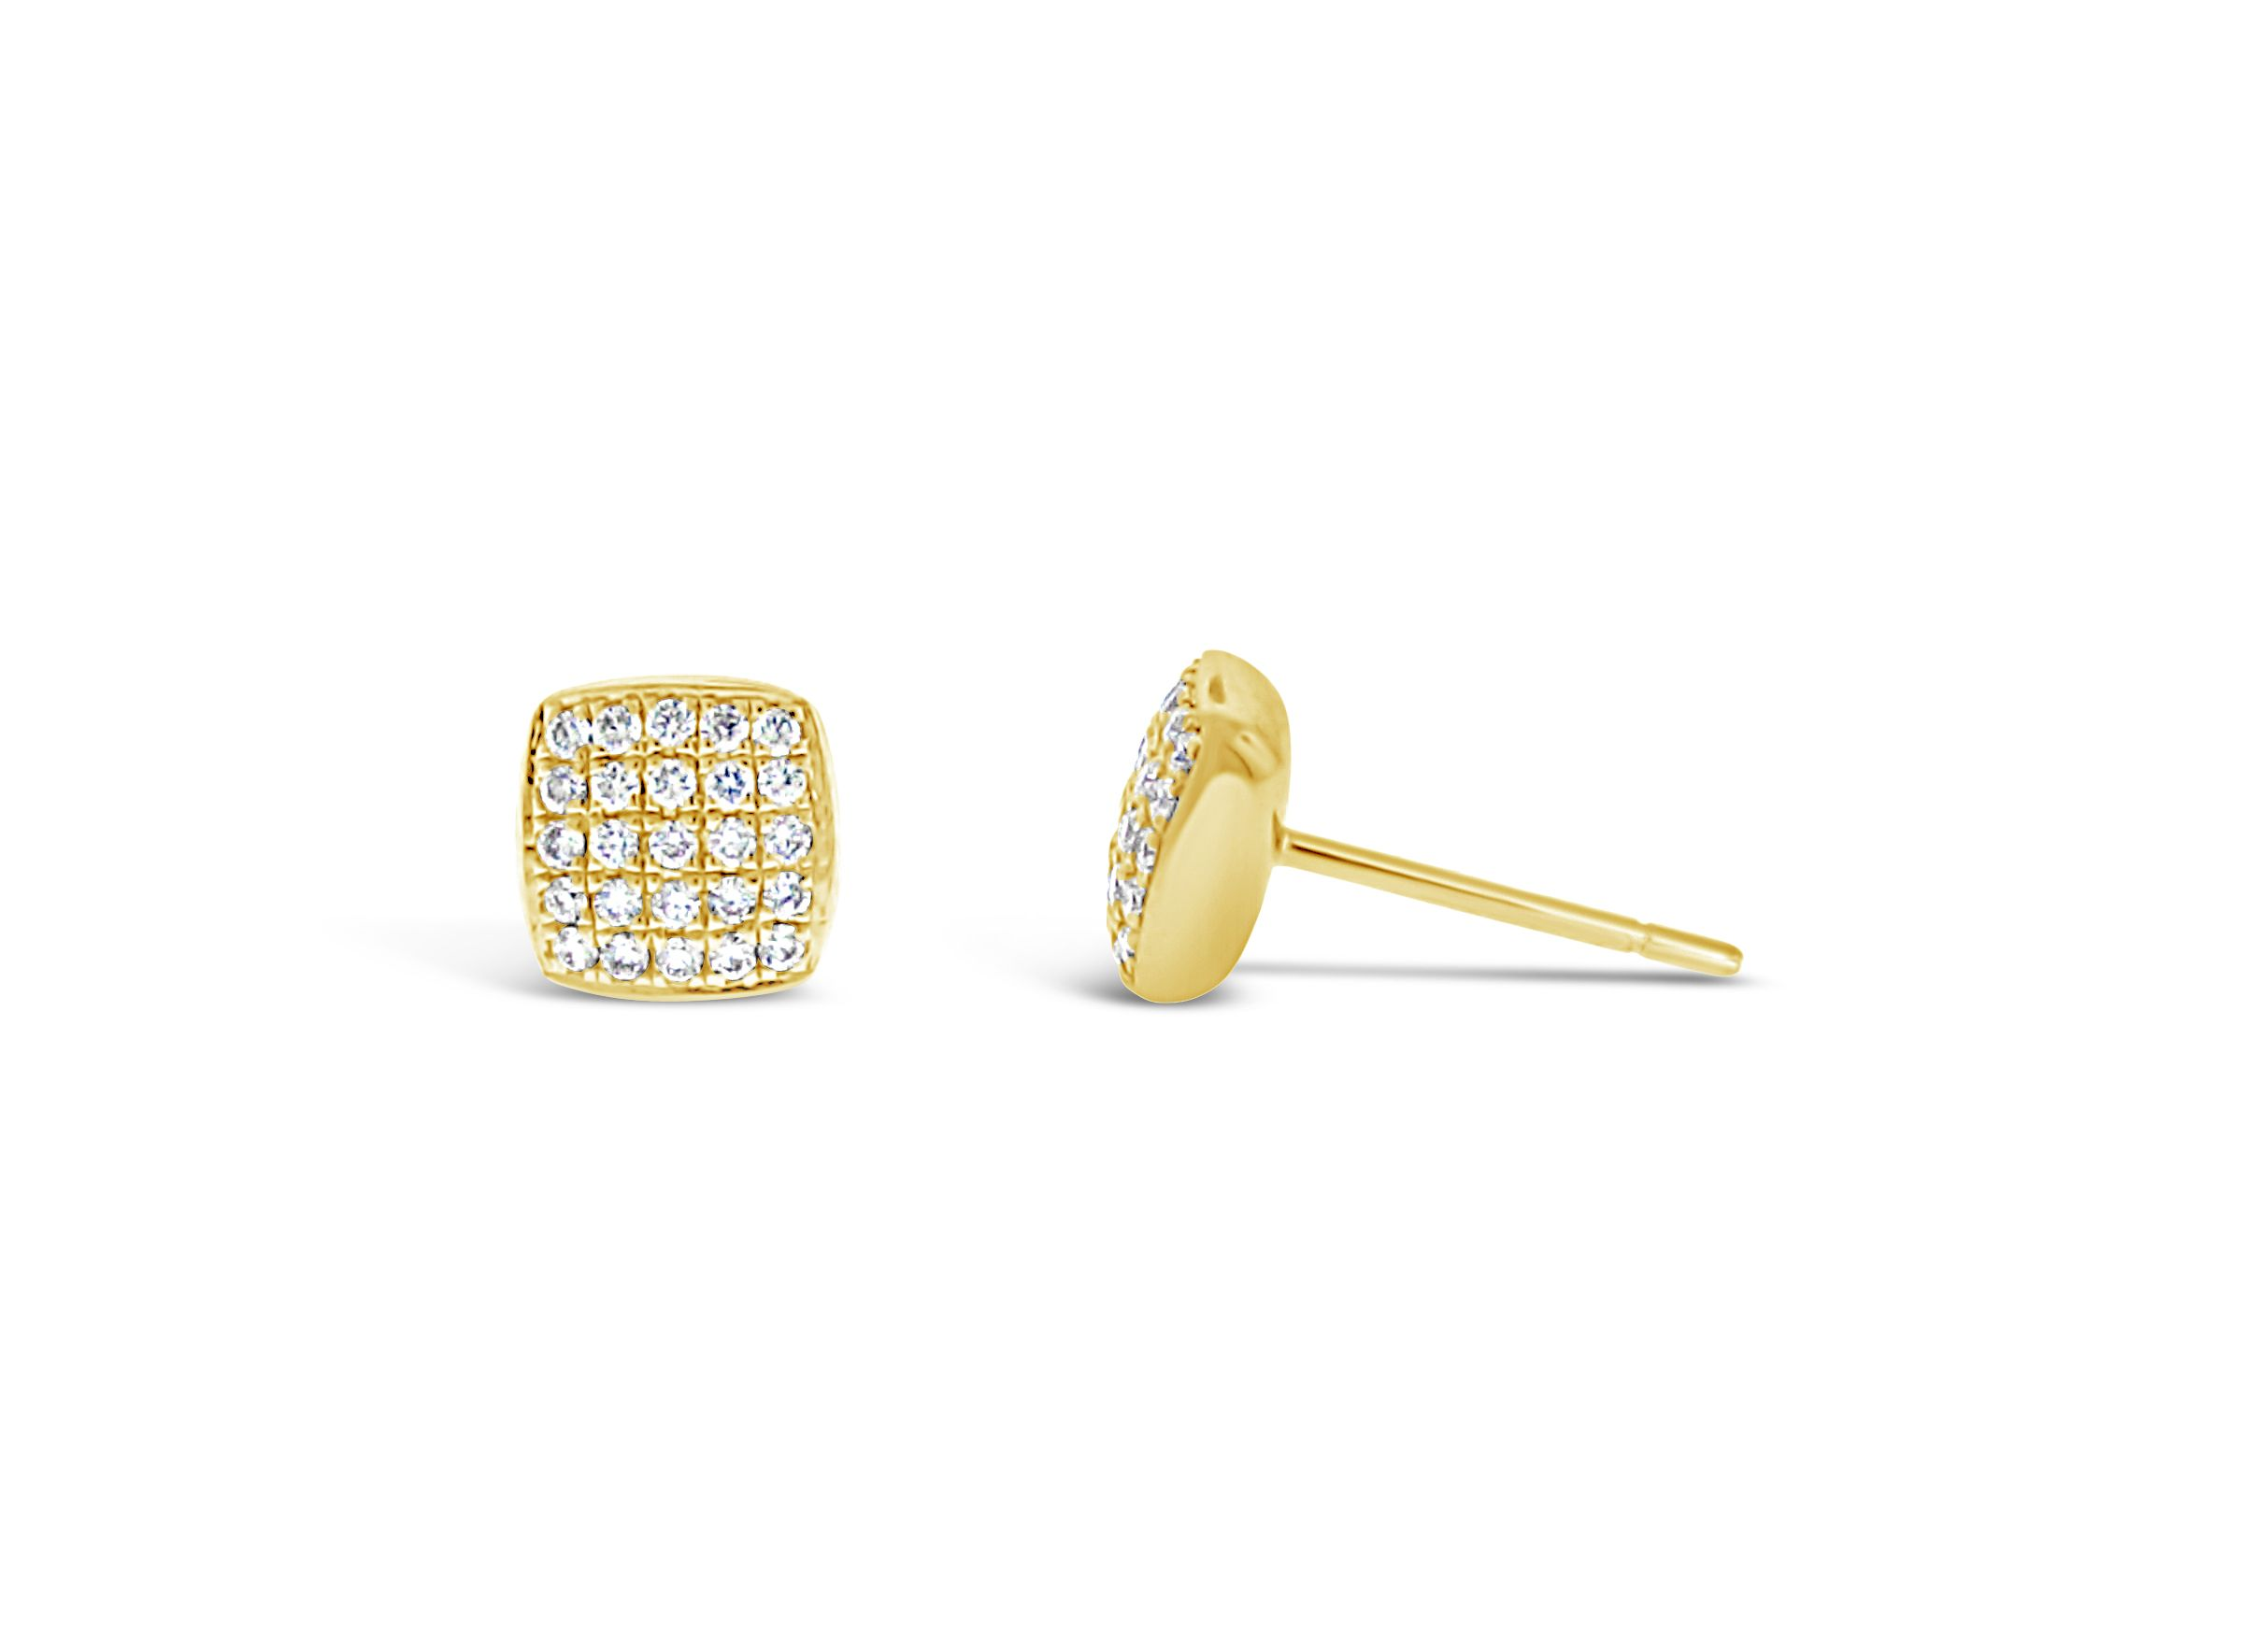 Diamond Earrings by Armand Jacoby